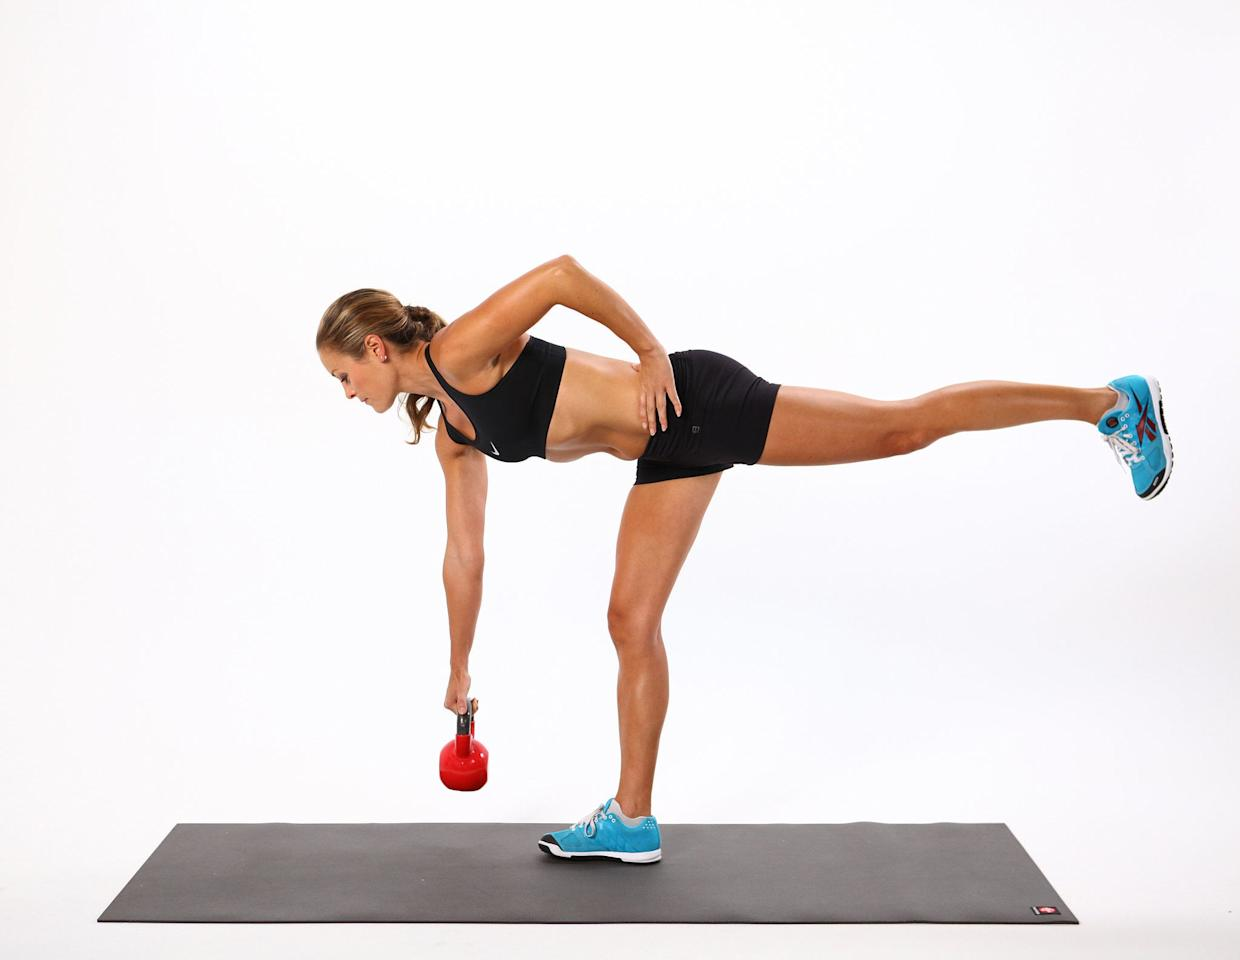 """<p>""""By focusing on one side and going heavy, you can feel your glutes on the standing leg right away,"""" said <a href=""""https://www.instagram.com/taralaferrara/"""" target=""""_blank"""" class=""""ga-track"""" data-ga-category=""""Related"""" data-ga-label=""""https://www.instagram.com/taralaferrara/"""" data-ga-action=""""In-Line Links"""">Tara Laferrara</a>, a NASM-certified trainer who's kettlebell-certified through Onnit Academy. """"If you pick your opposite foot and draw your heel up towards the sky, you can get a little glute activation on that leg as well.""""</p> <ul> <li>Hold a kettlebell in your right hand, and lift your left foot slightly off the ground.</li> <li>Keeping your back neutral, lean your entire torso forward while raising your left leg, which should stay in line with your body. The kettlebell will lower toward the ground. Keep your left shoulder blade pulled down your back.</li> <li>With your back straight, return upright, coming to your starting position.</li> <li>This completes one rep. Maximize this move by keeping your right foot off the ground as you go through your reps.</li> </ul>"""